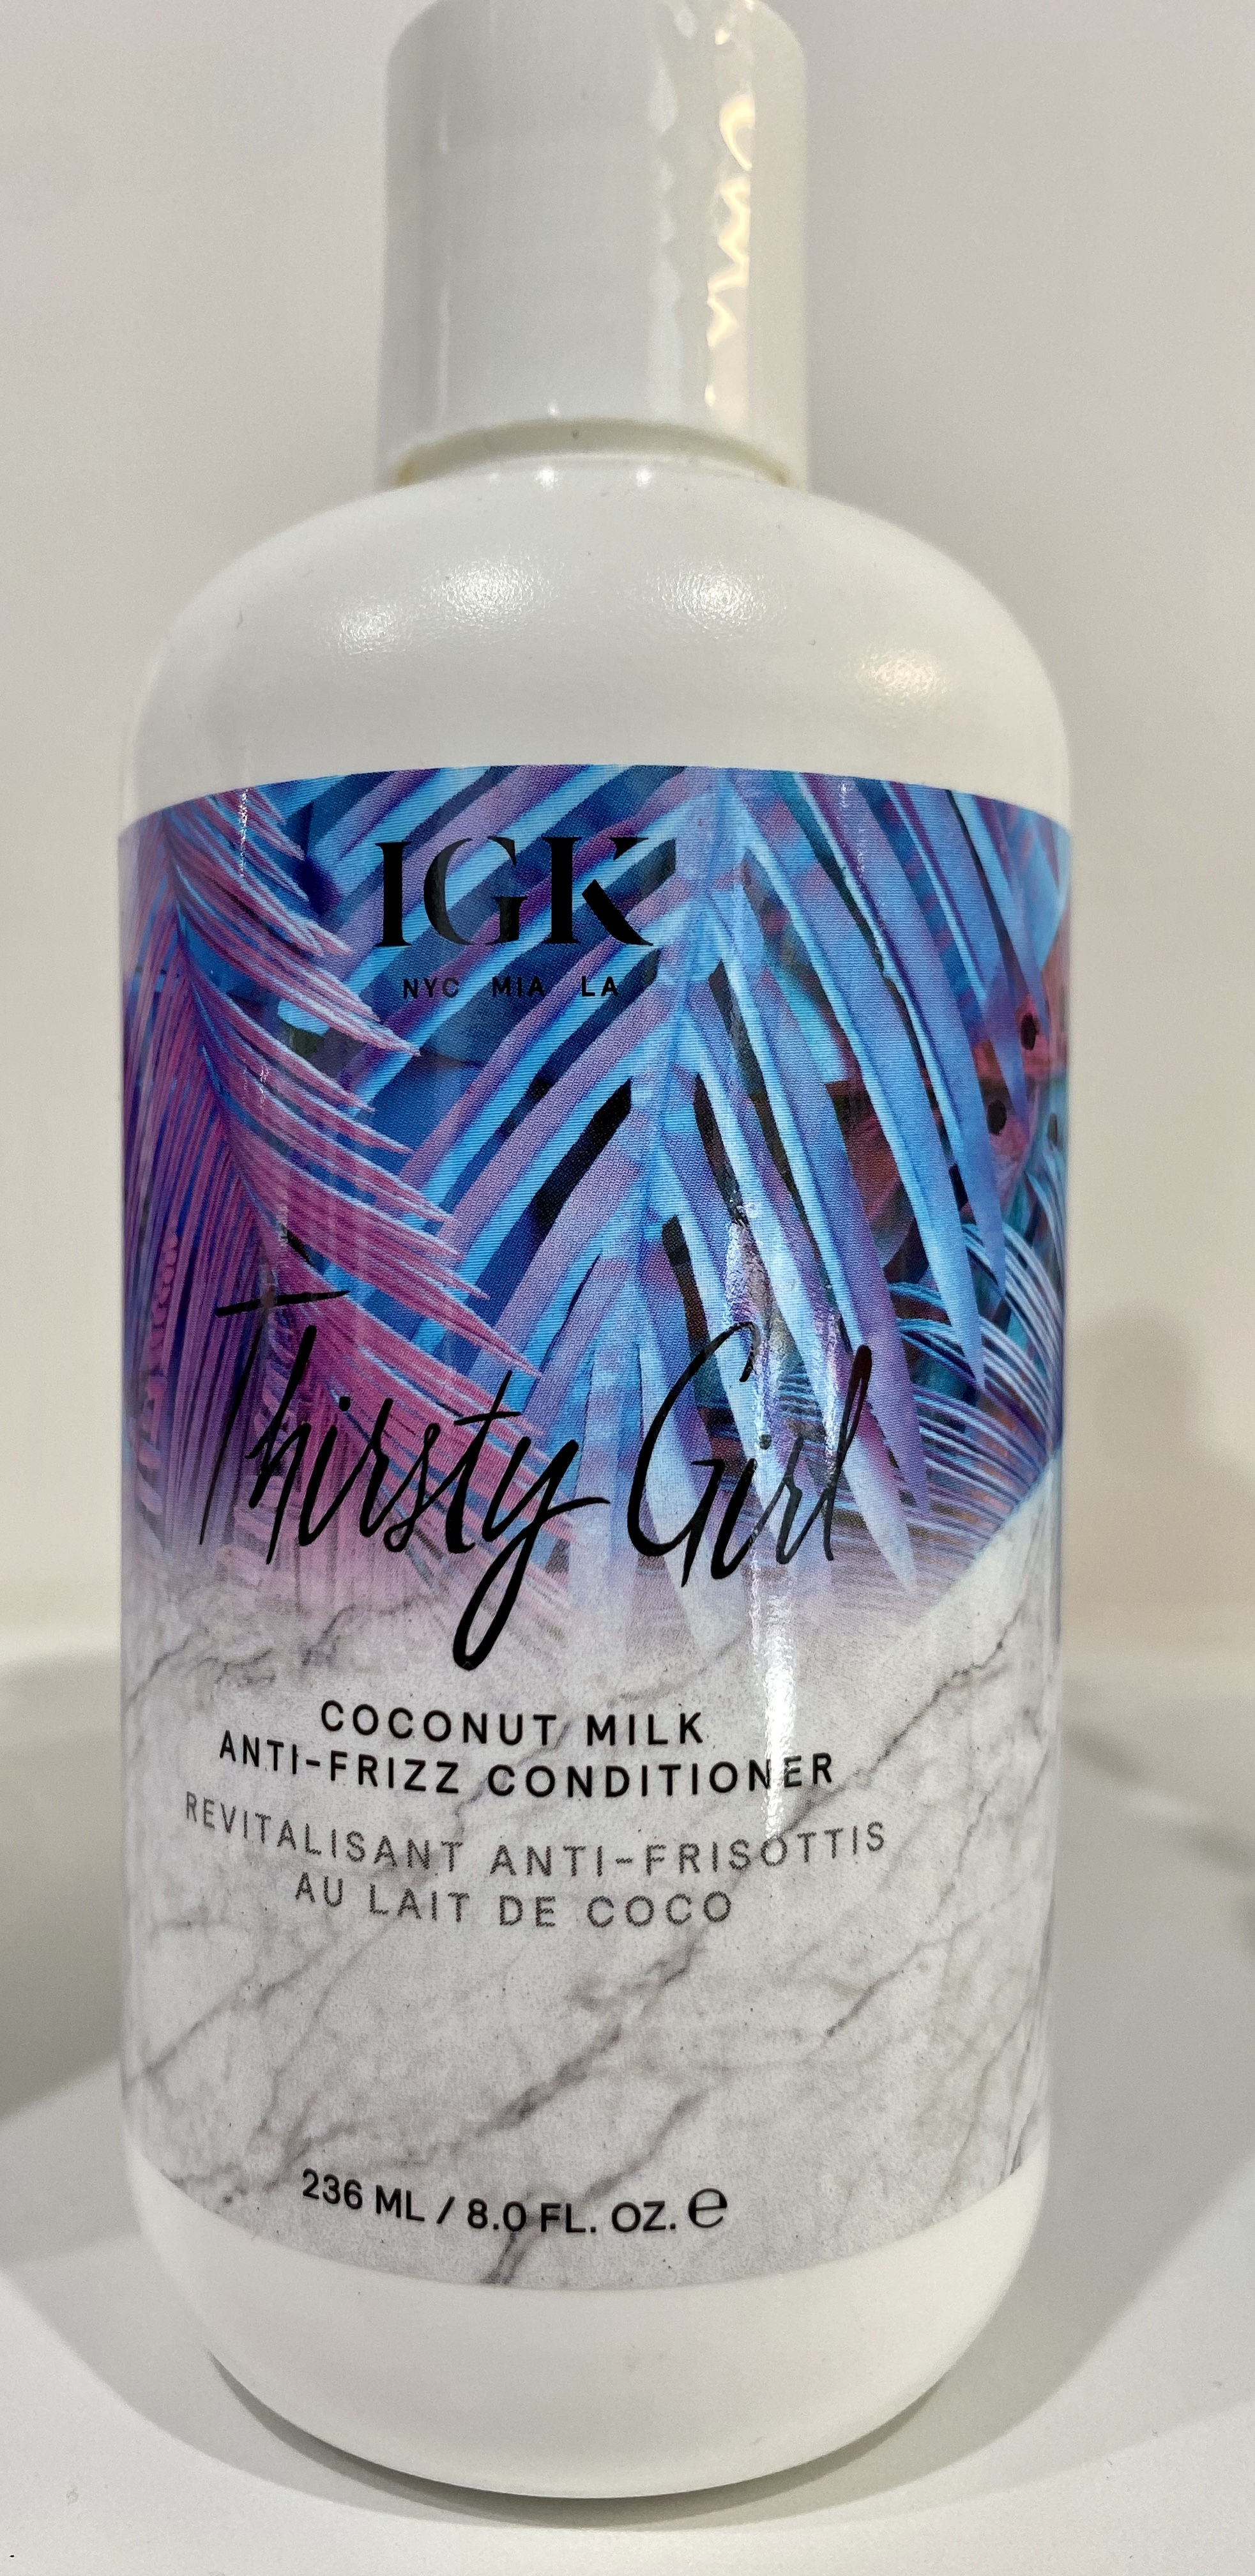 Thirsty Girl Conditioner